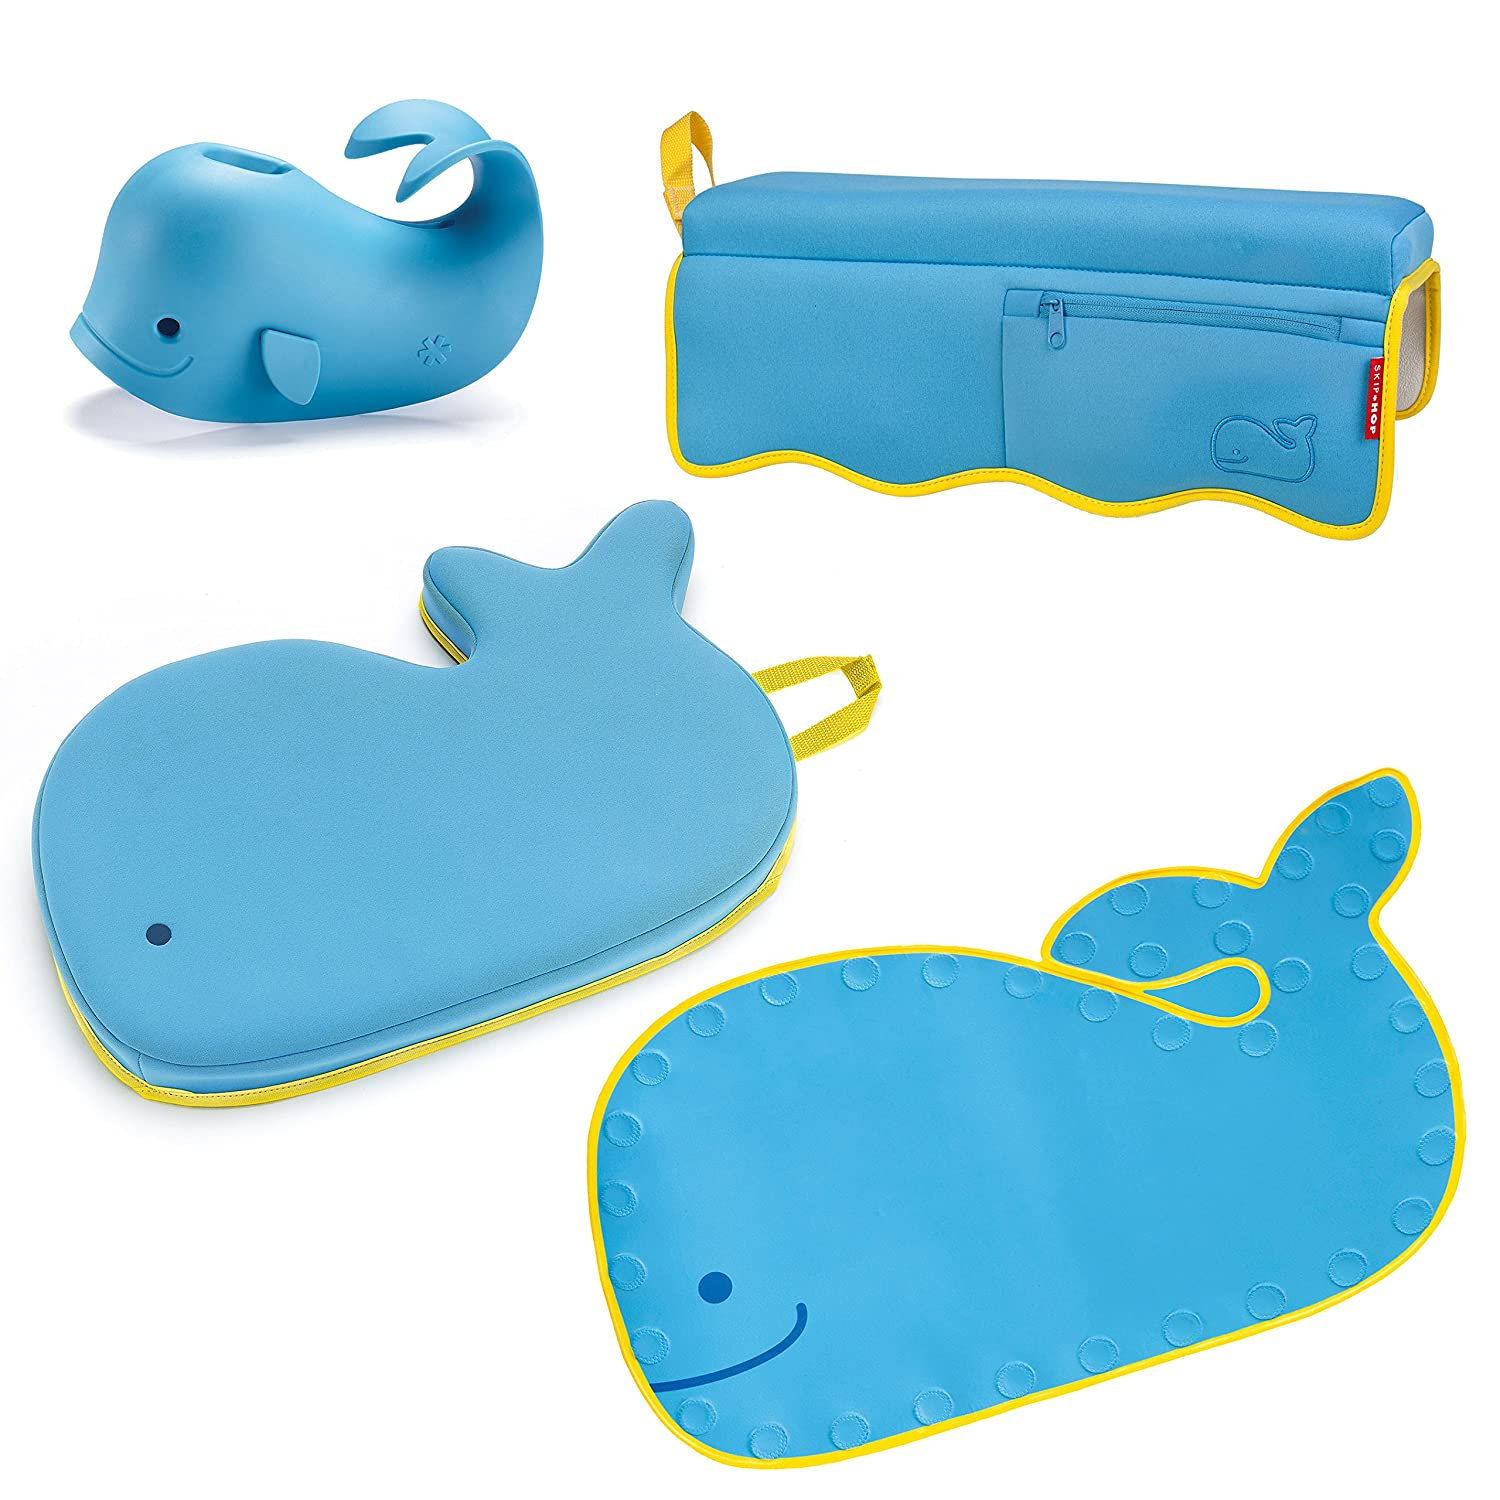 Moby Baby Bath Set, Four Bathtime Essentials - Spout Cover, Bath Kneeler, Elbow Pad, and Bath Mat, Blue Skip Hop 235625